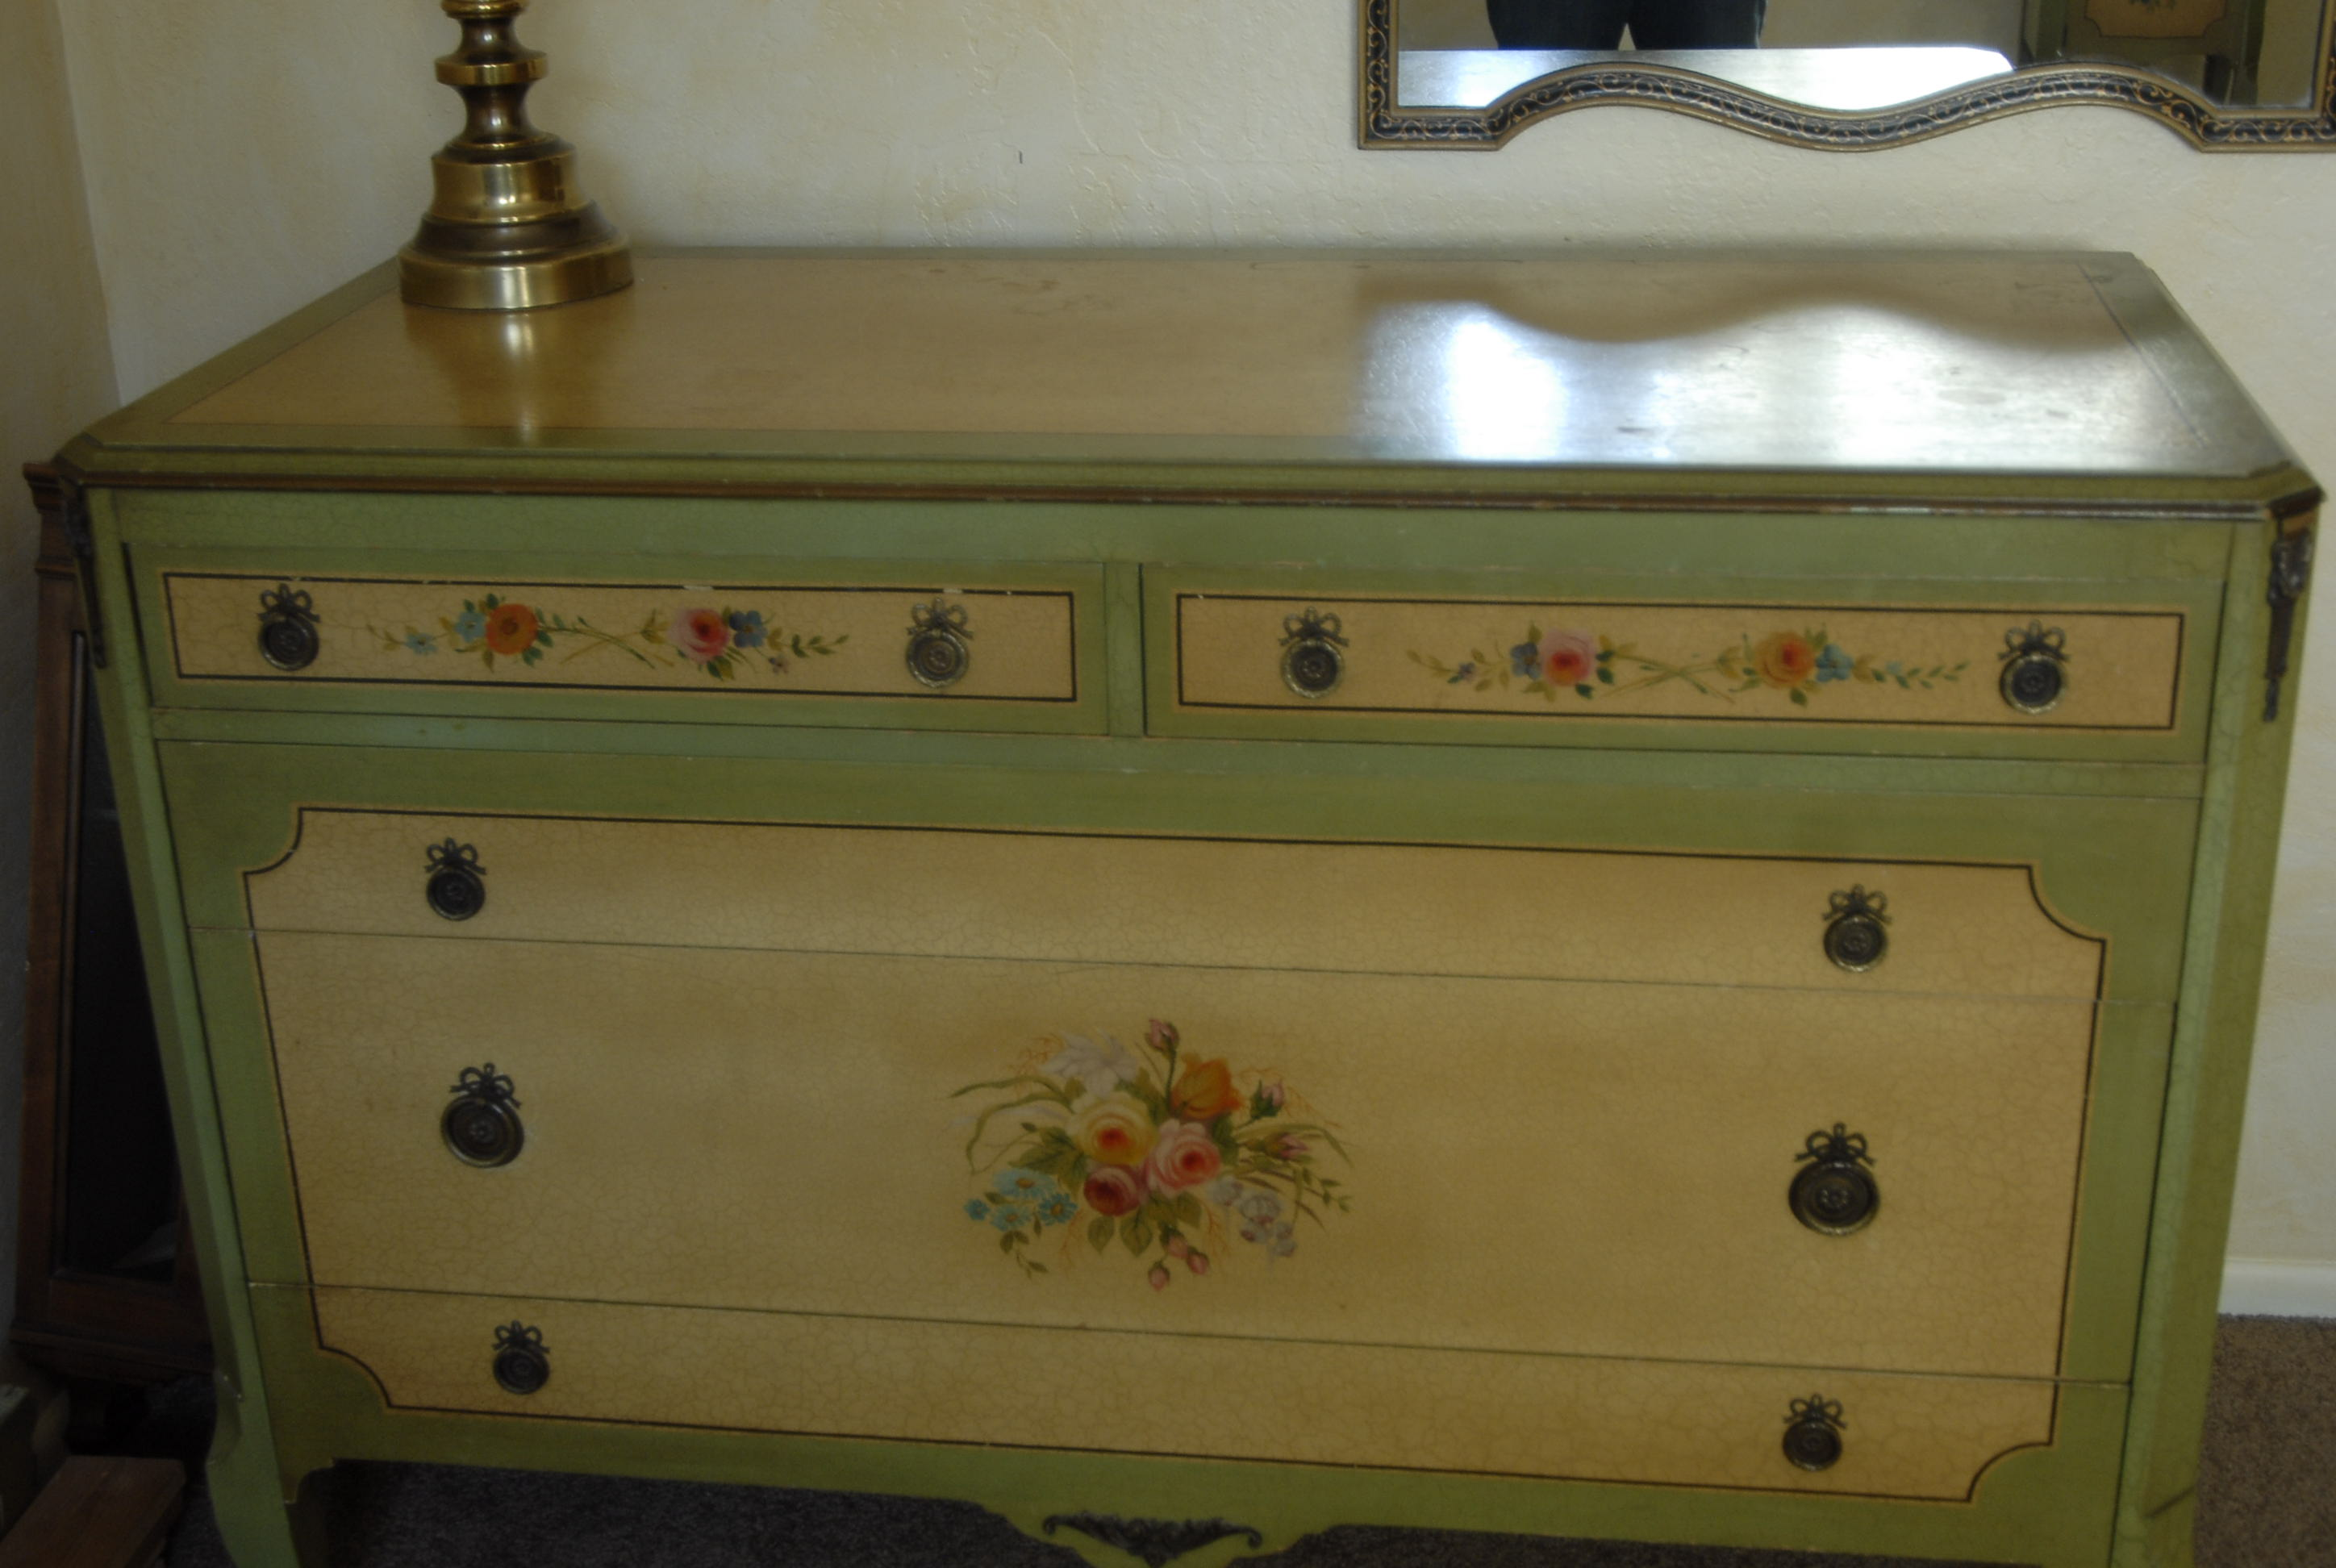 Antique hand painted crackle bedroom antique appraisal for Hand painted furniture